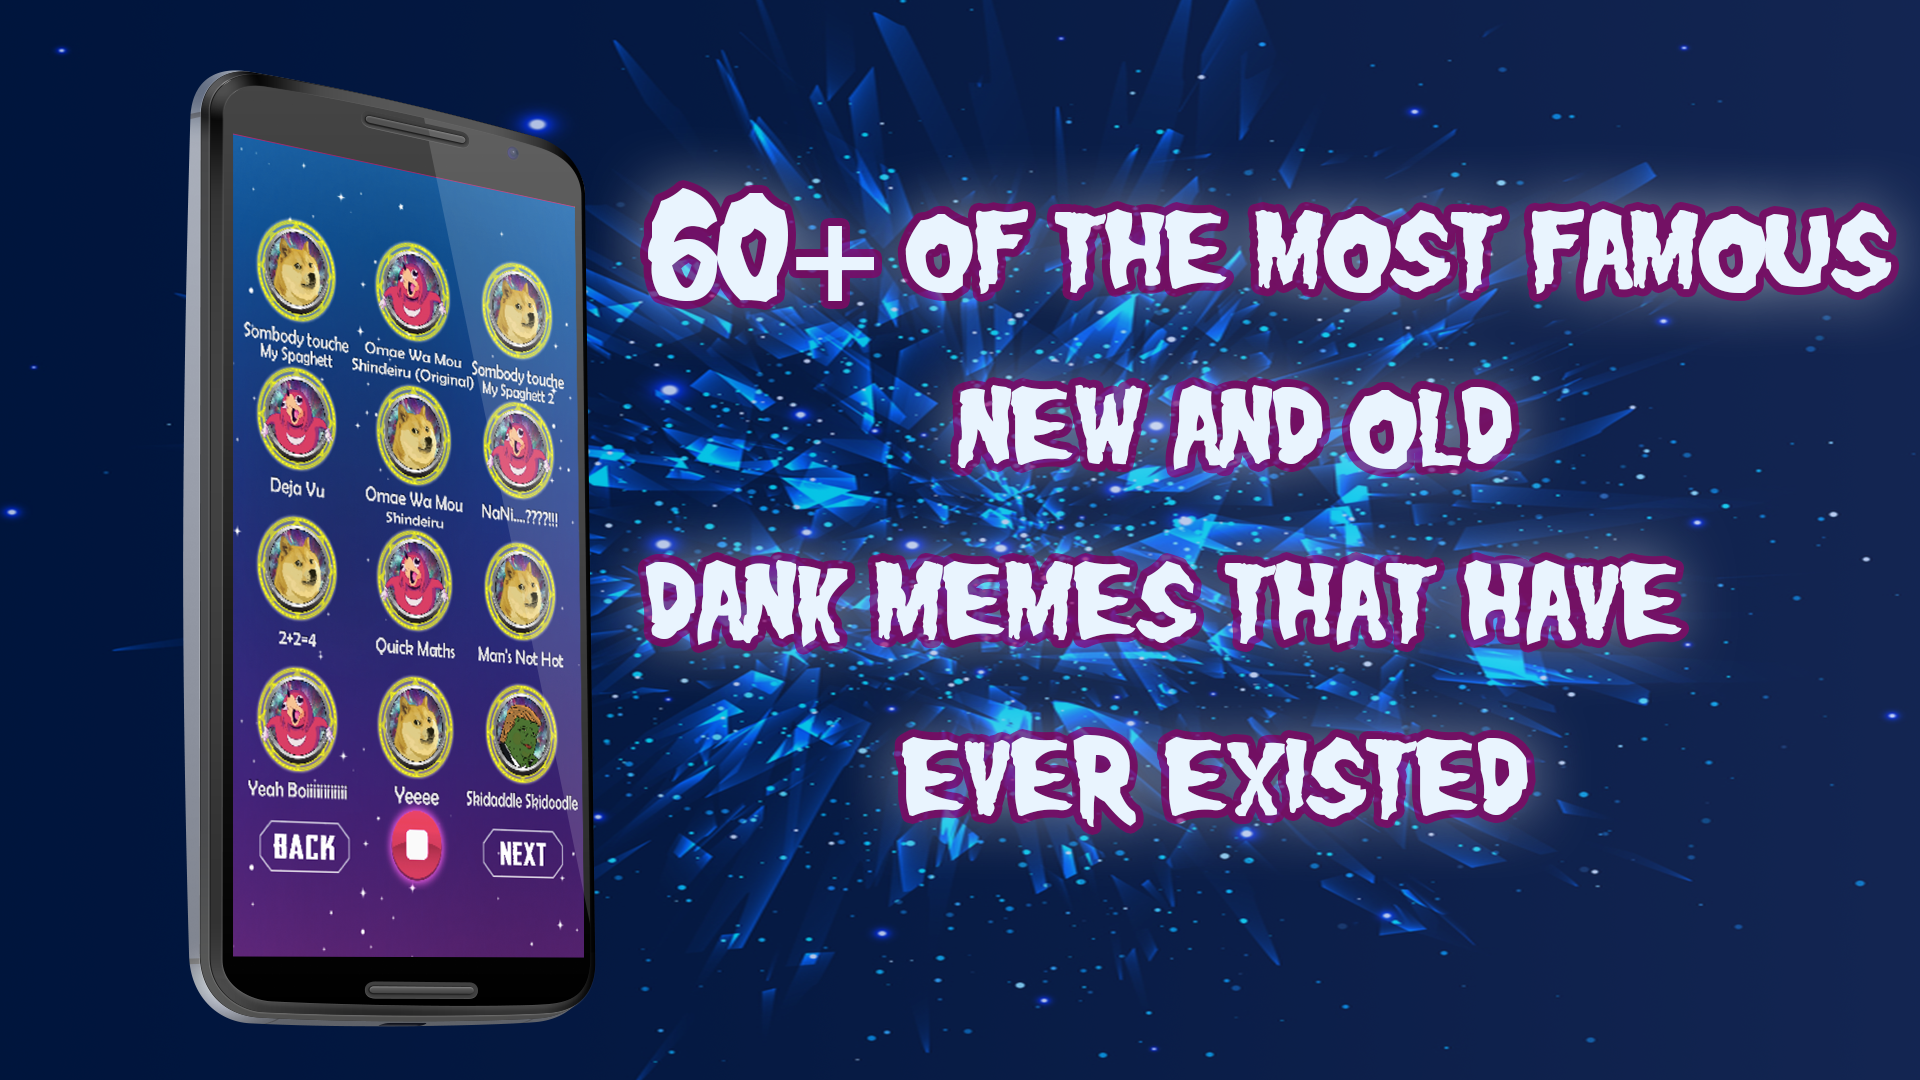 Funny Dank meme soundboard for android/eclipse  Admob/bbdoc included